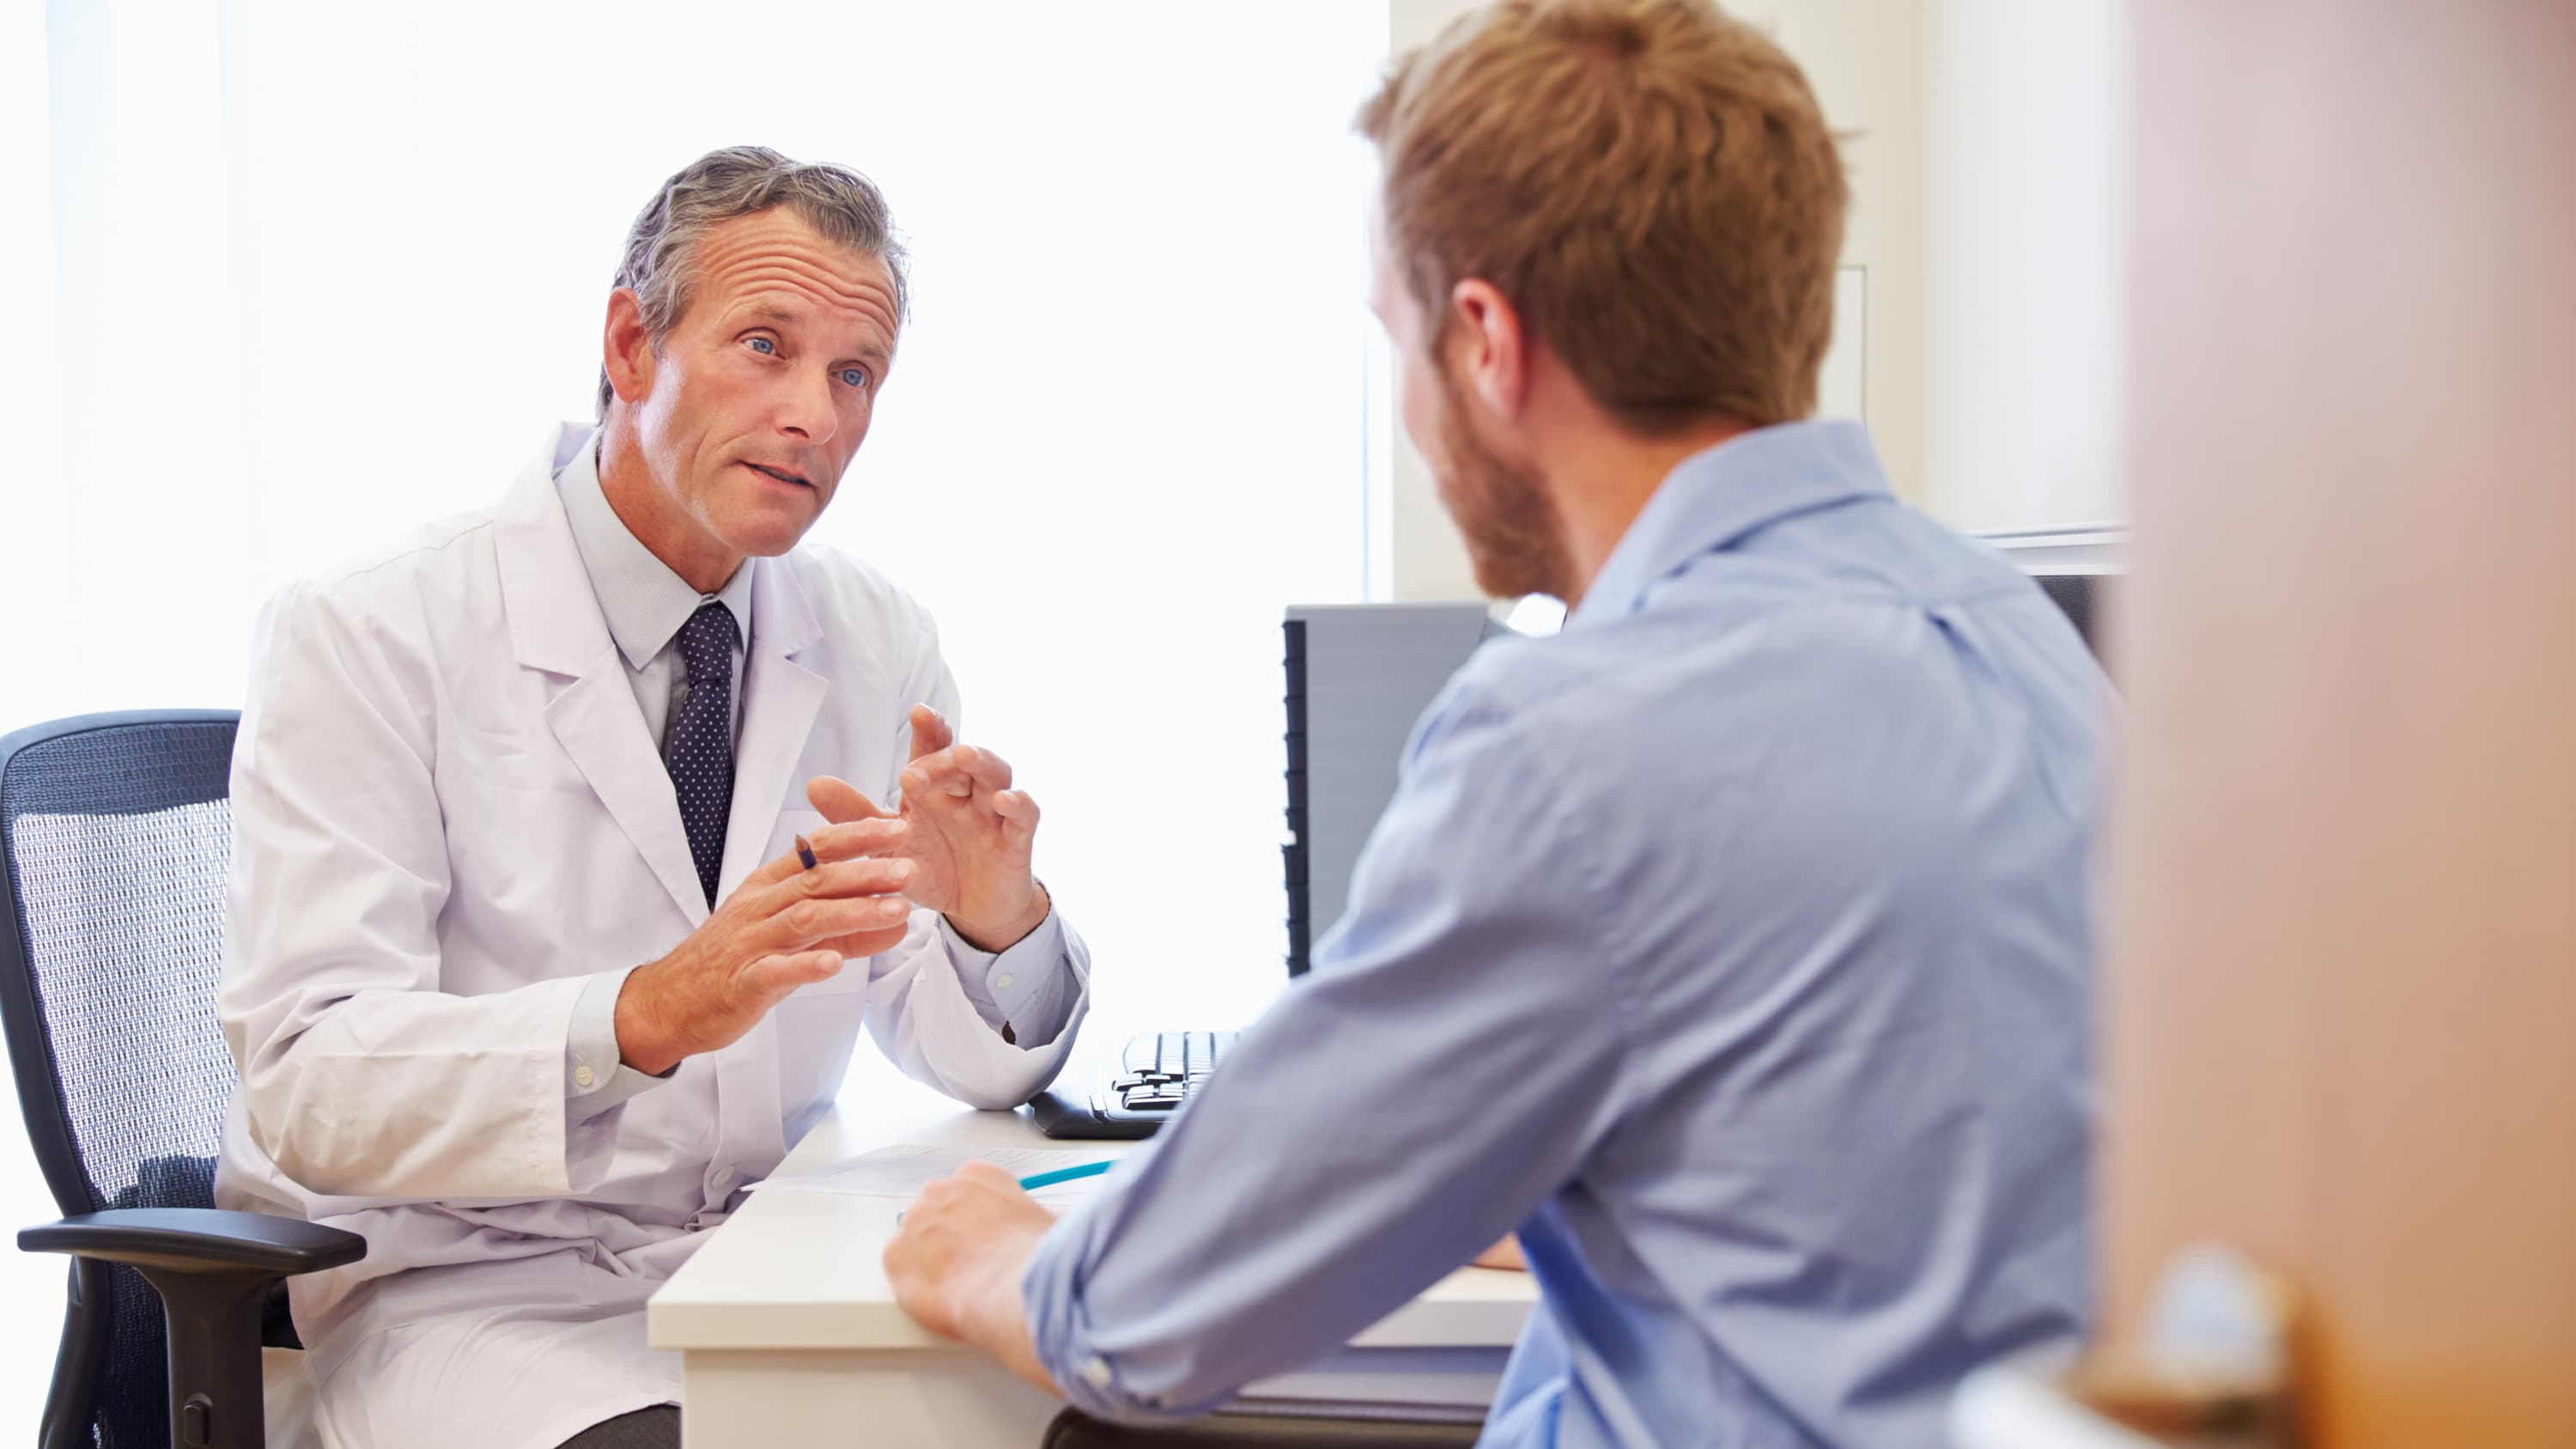 A doctor consults with his male patient who is in the age group that testicular cancer affects--15- to 34-year-olds.